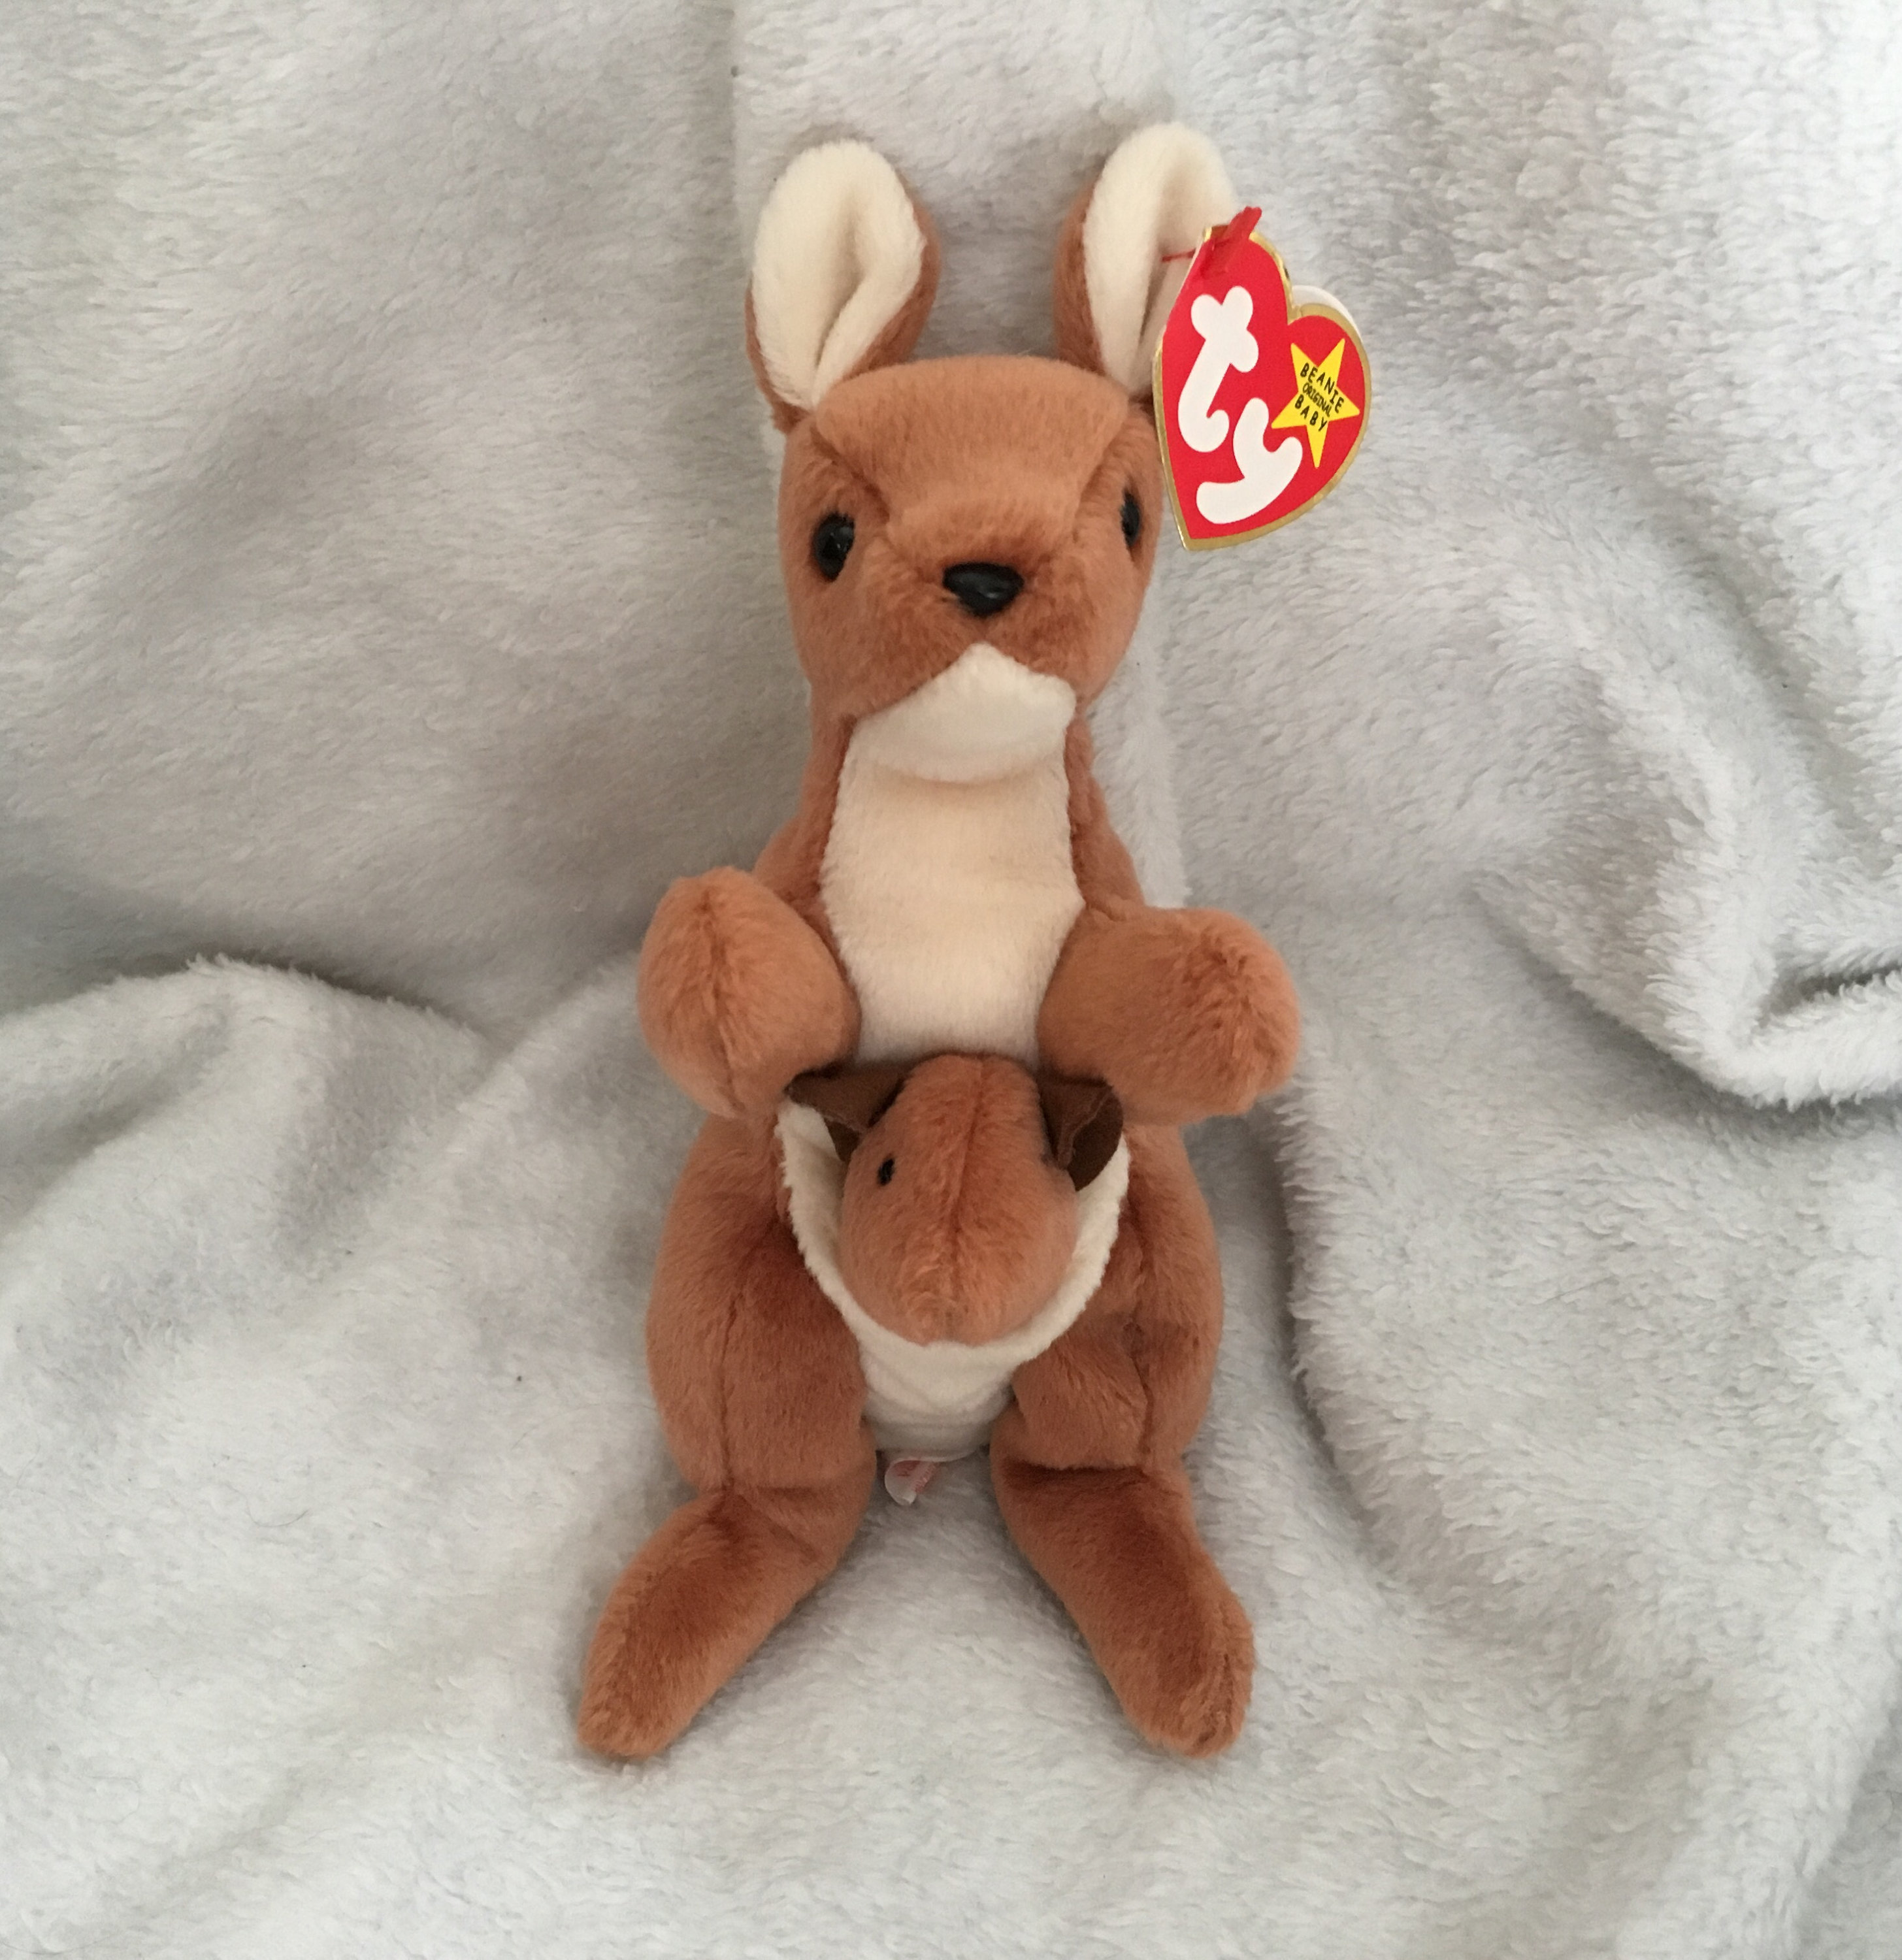 495b9878a96 Pouch Beanie Baby MINT CONDITION Collector s Item 60%